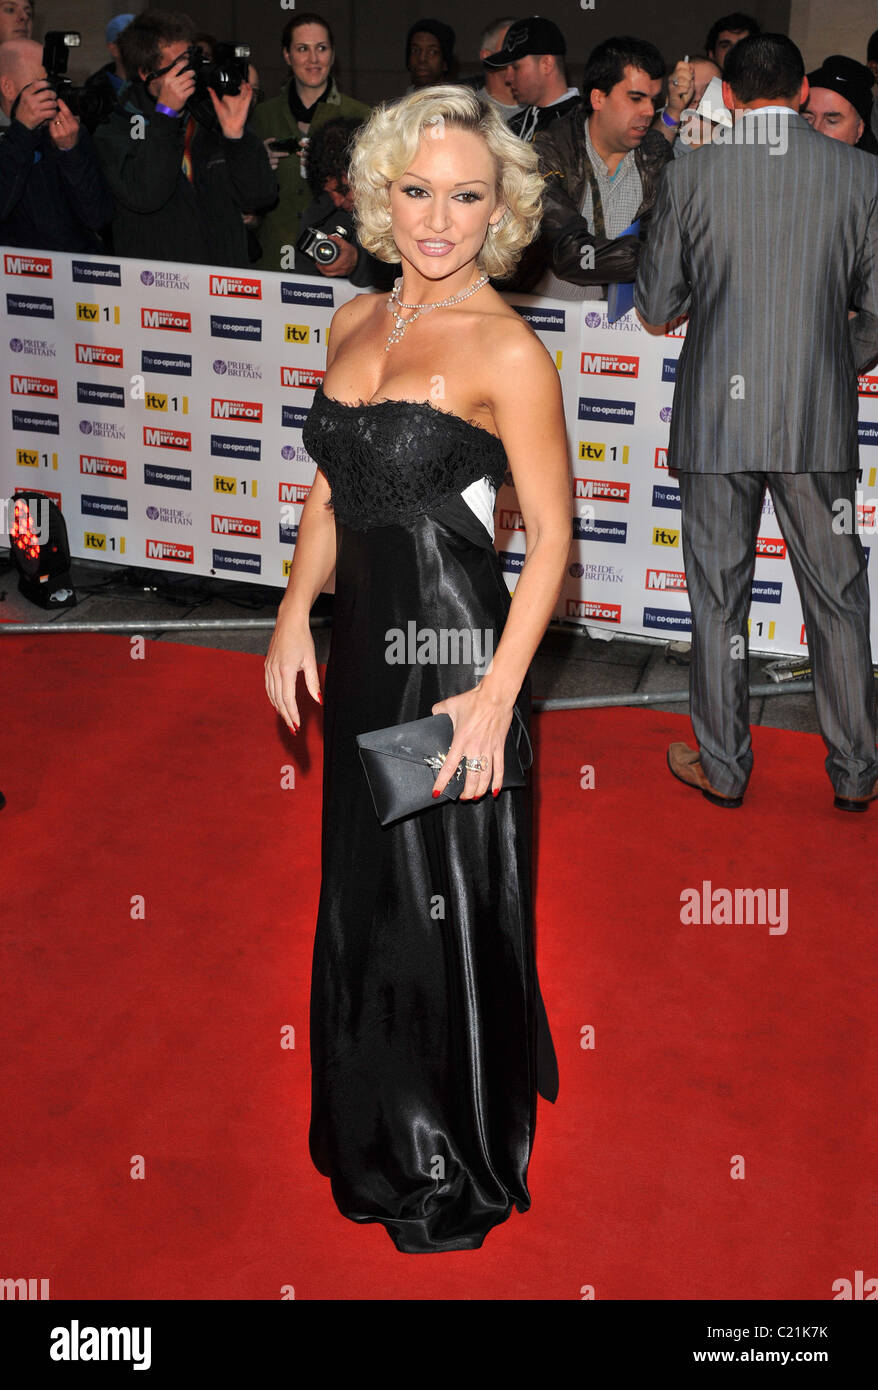 Kristina Rihanoff Pride of Britain Awards held at the Grosvenor House - Arrivals London, England - 05.10.09 - Stock Image